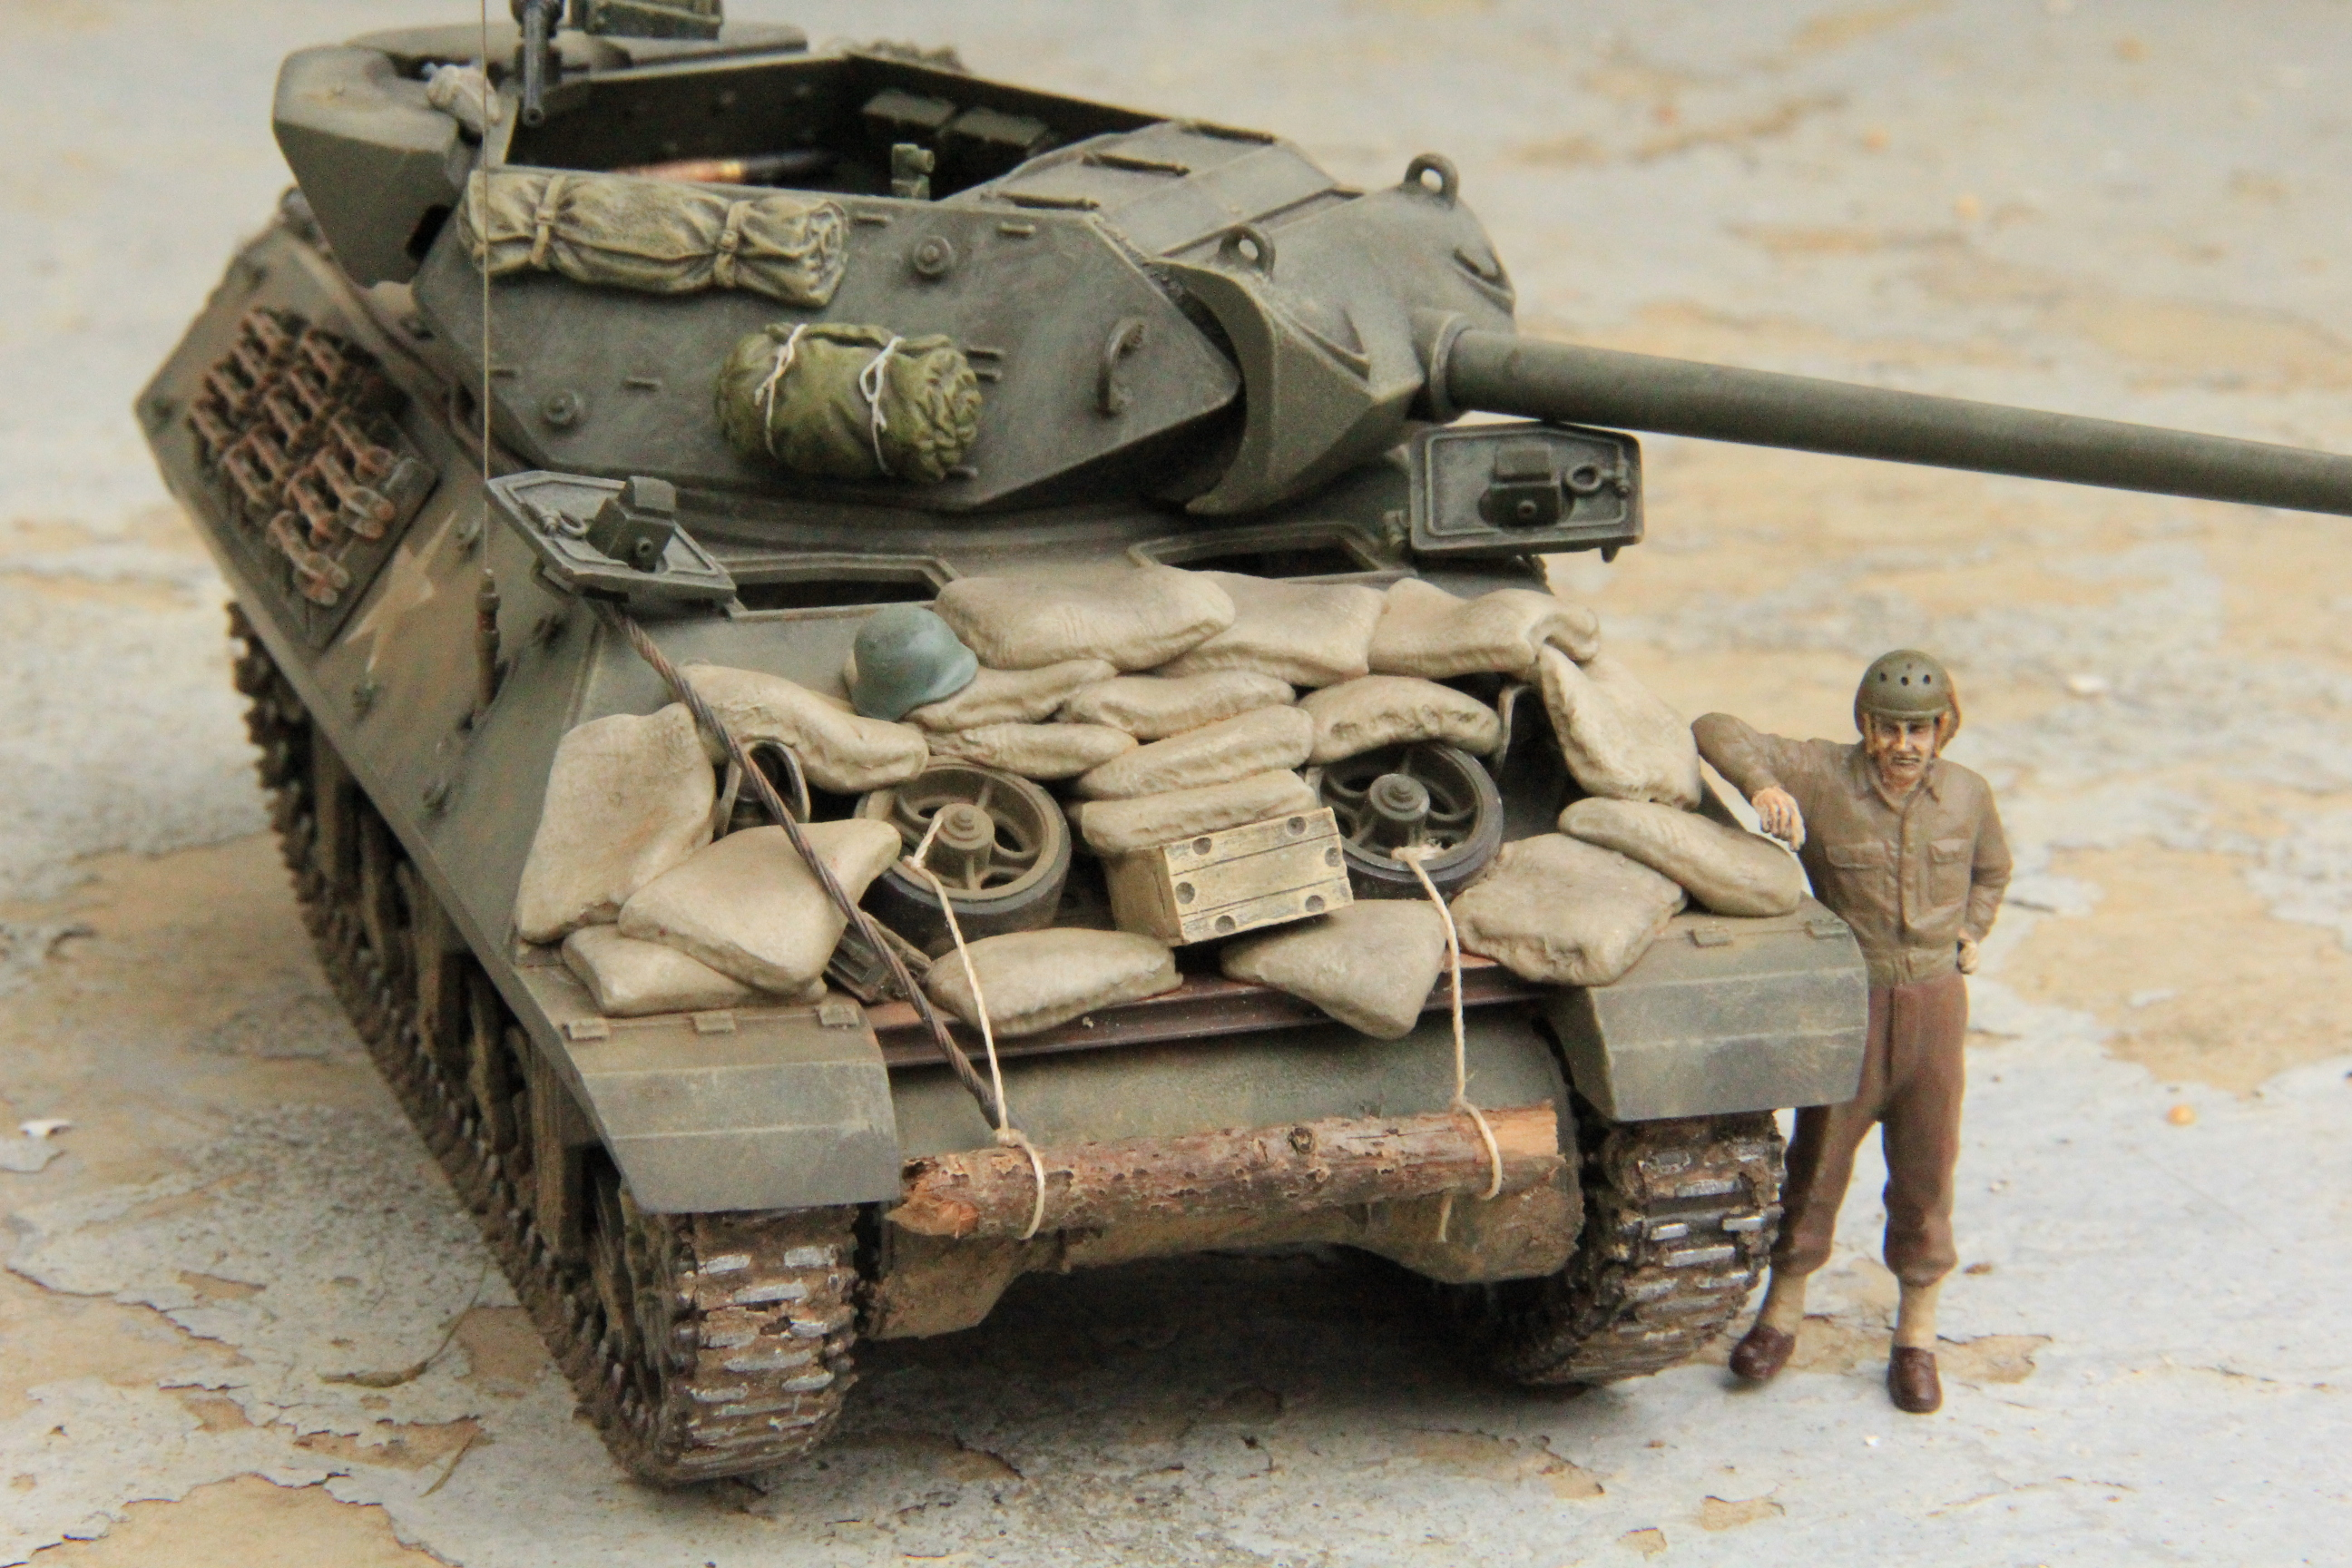 Acadamy S 1 35 M10 Tank Destroyer Finescale Modeler Essential Magazine For Scale Model - M10